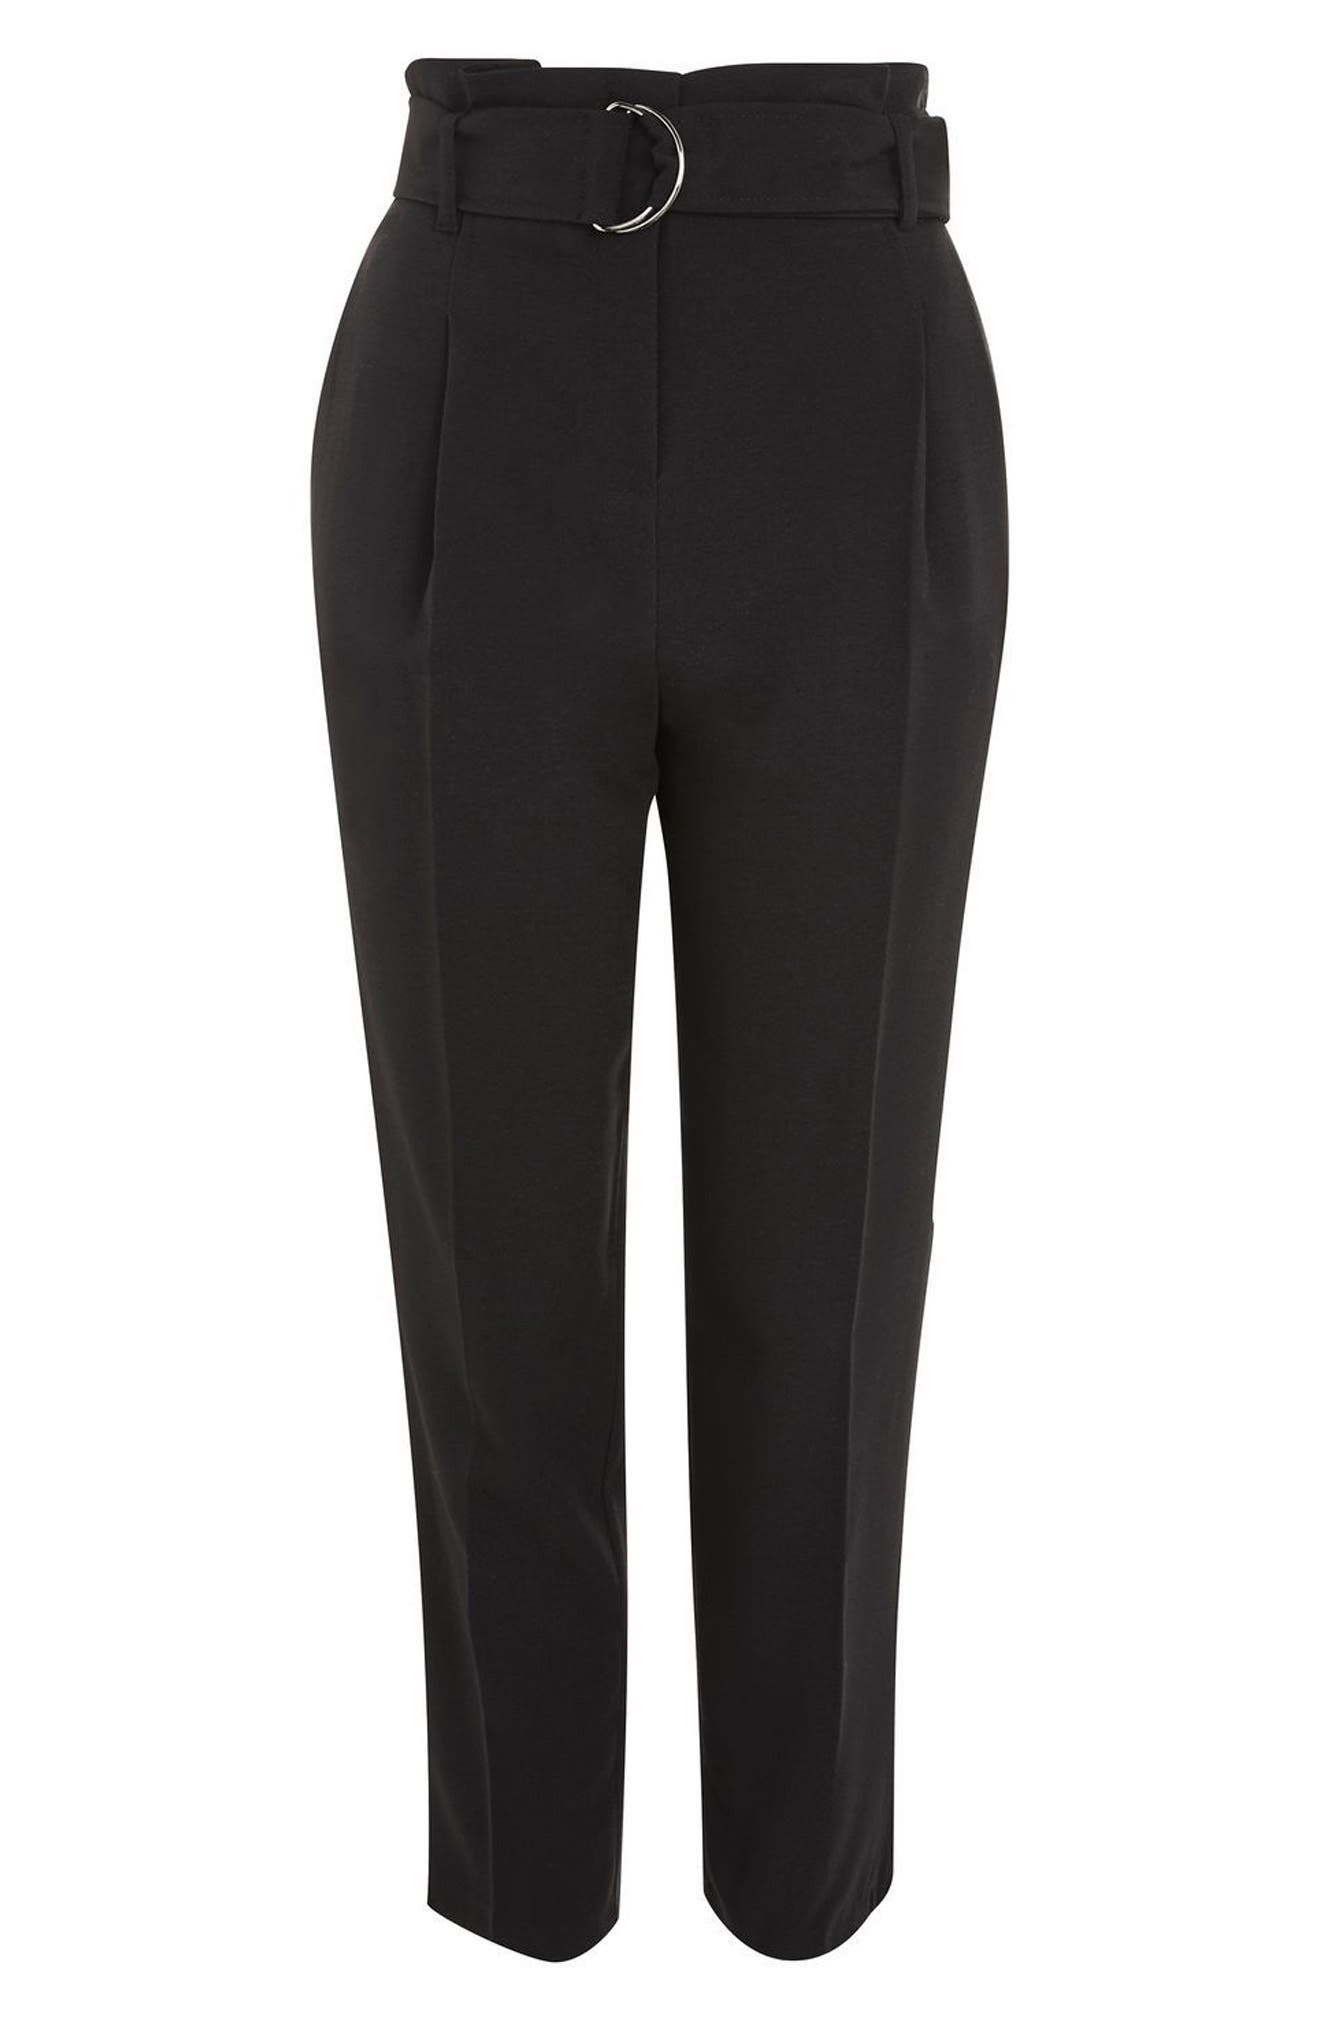 Belted Paperbag Peg Trousers,                             Alternate thumbnail 4, color,                             001